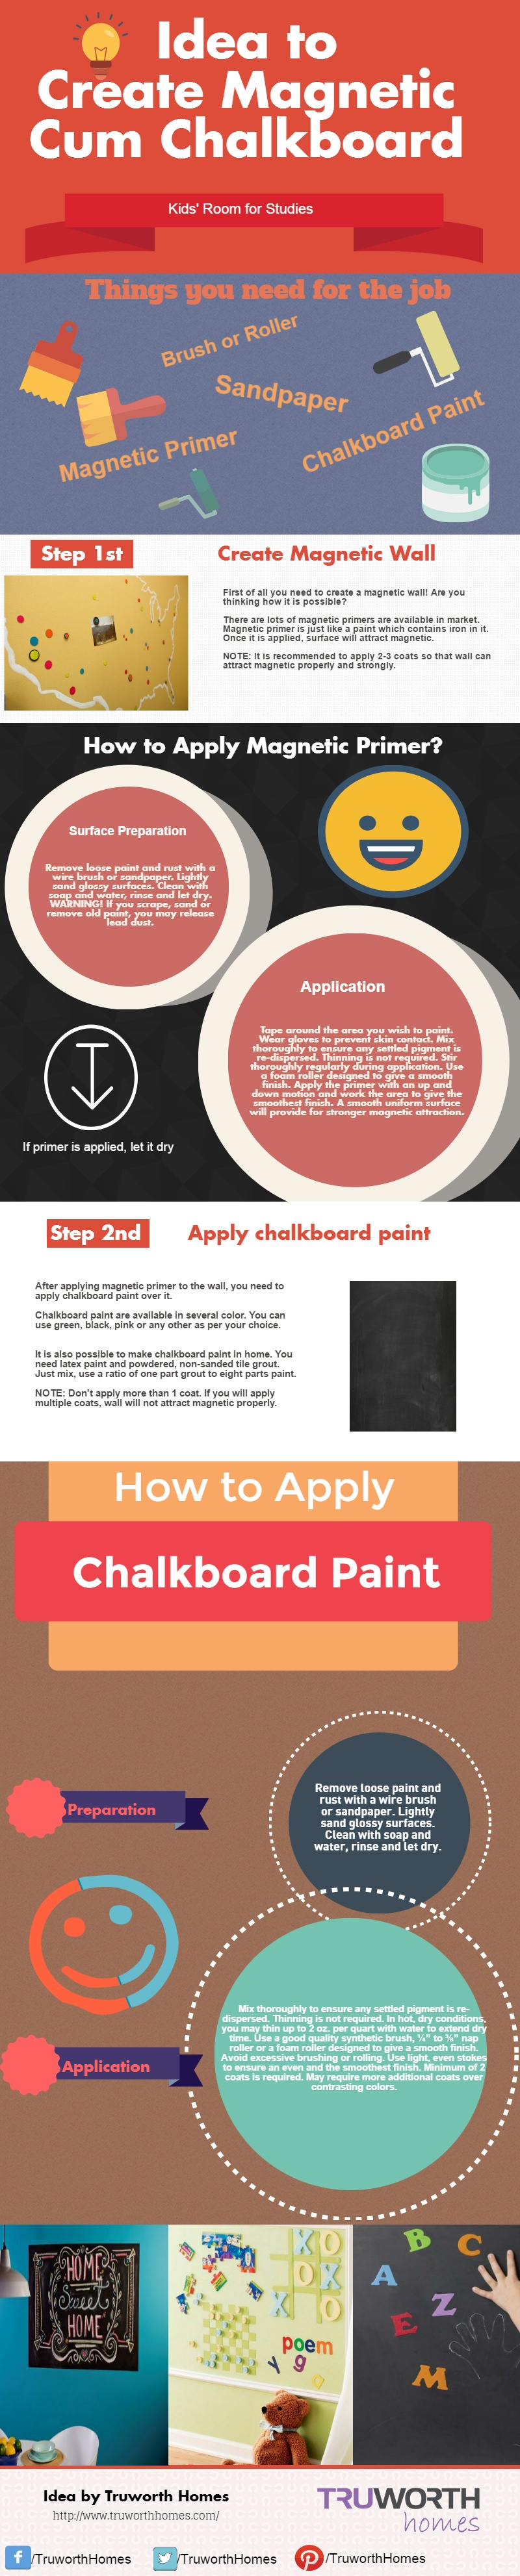 How to Make a Magnetic Chalkboard Infographic